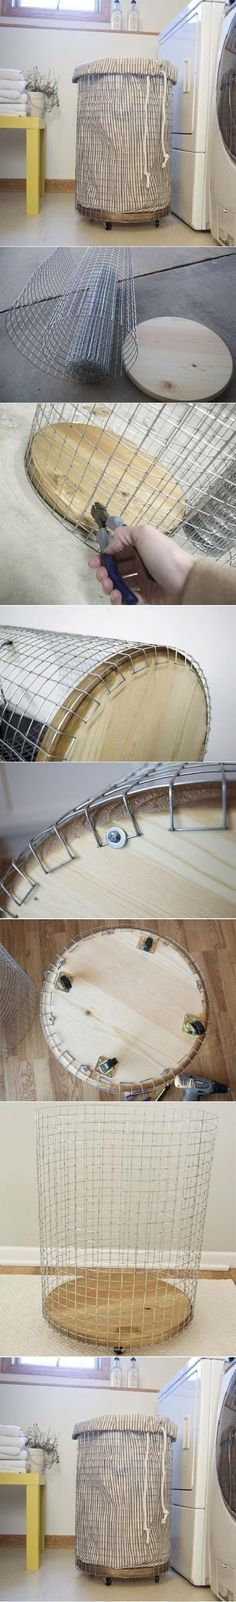 Cheap & Chic: How To Make a French-Vintage-Inspired Wire Hamper - DIY wire laundry basket La mejor imagen sobre diy face mask para tu gusto Estás buscando algo y no - Diy Projects To Try, Home Projects, Crafts To Make, Diy Crafts, Crafts Cheap, Towel Crafts, Weekend Projects, Diy Décoration, Easy Diy